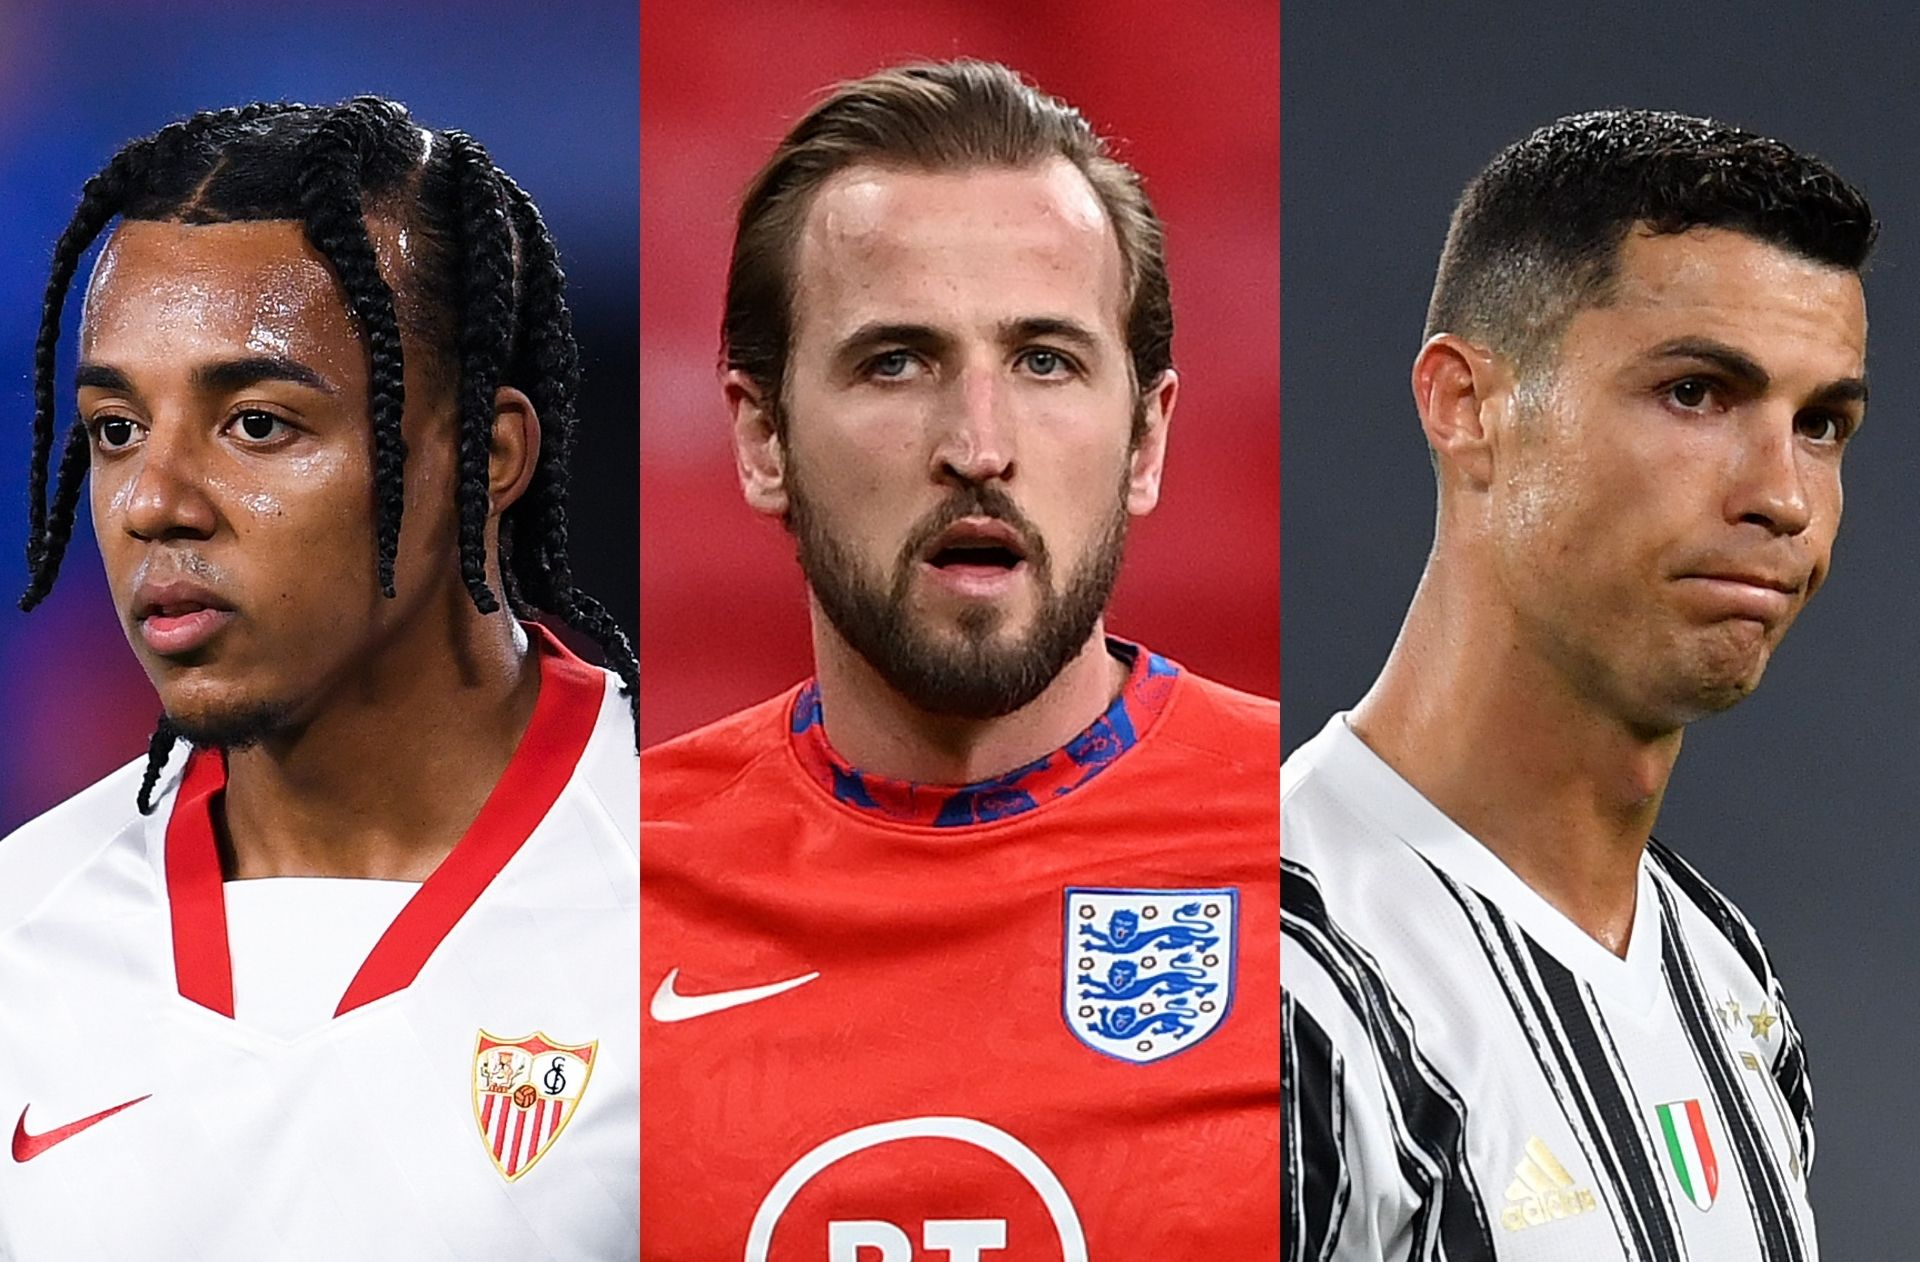 Friday's transfer rumors - Chelsea's next 3 targets emerge after Lukaku deal